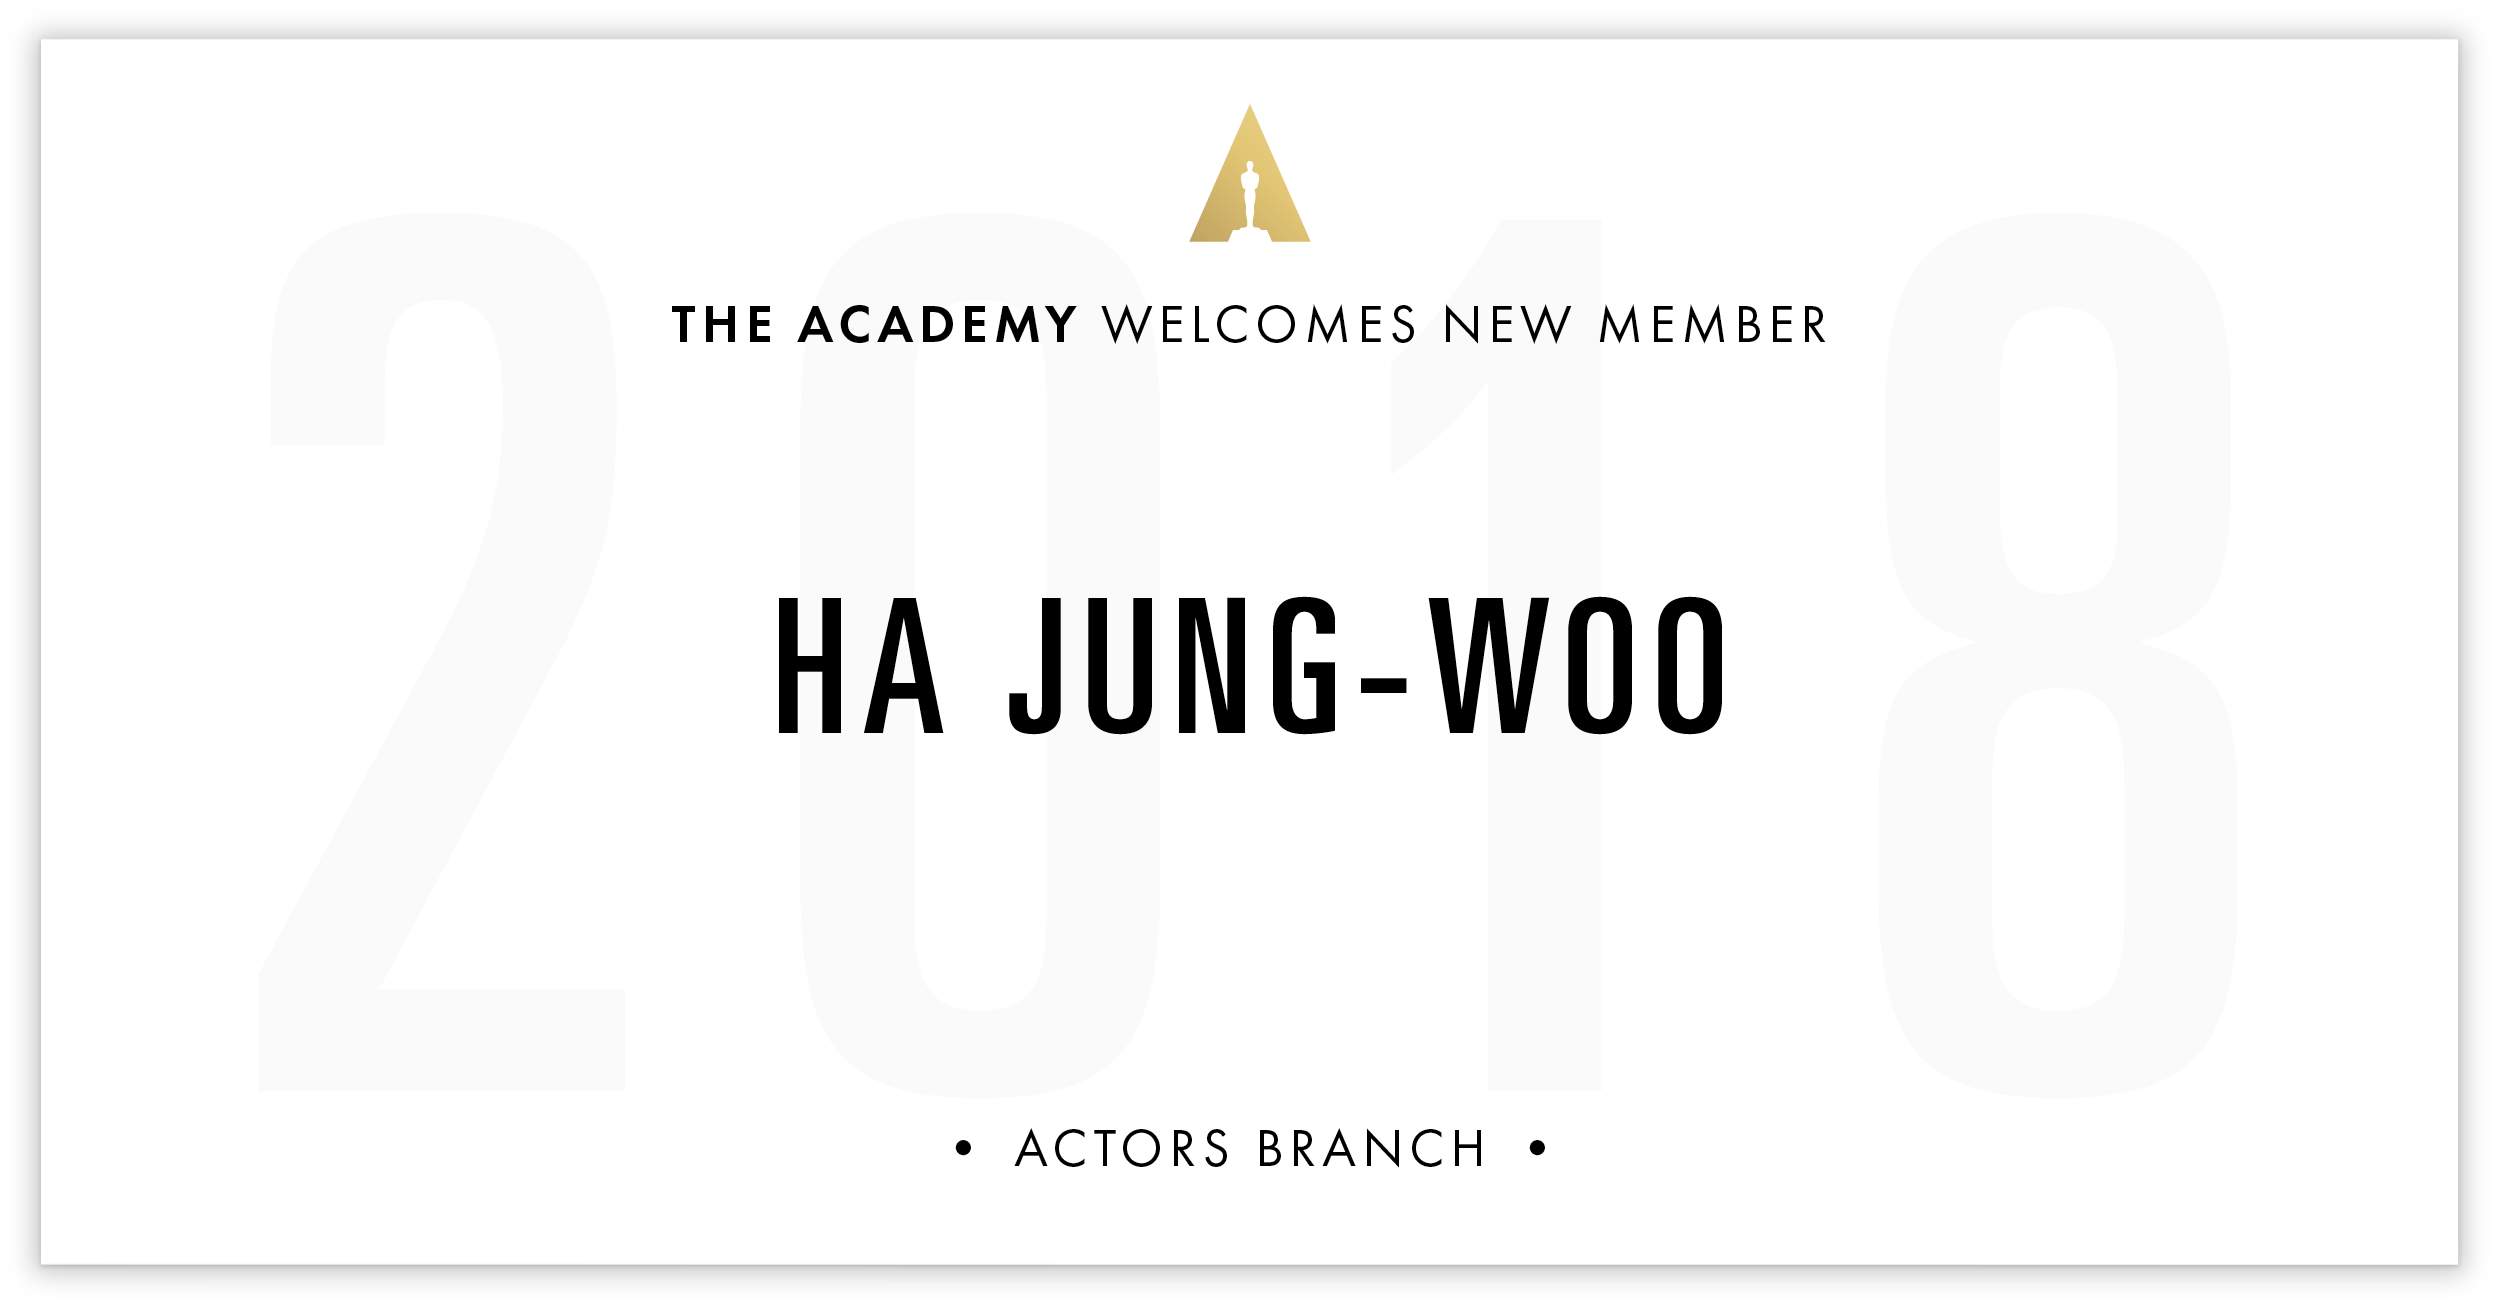 Ha Jung-woo is invited!